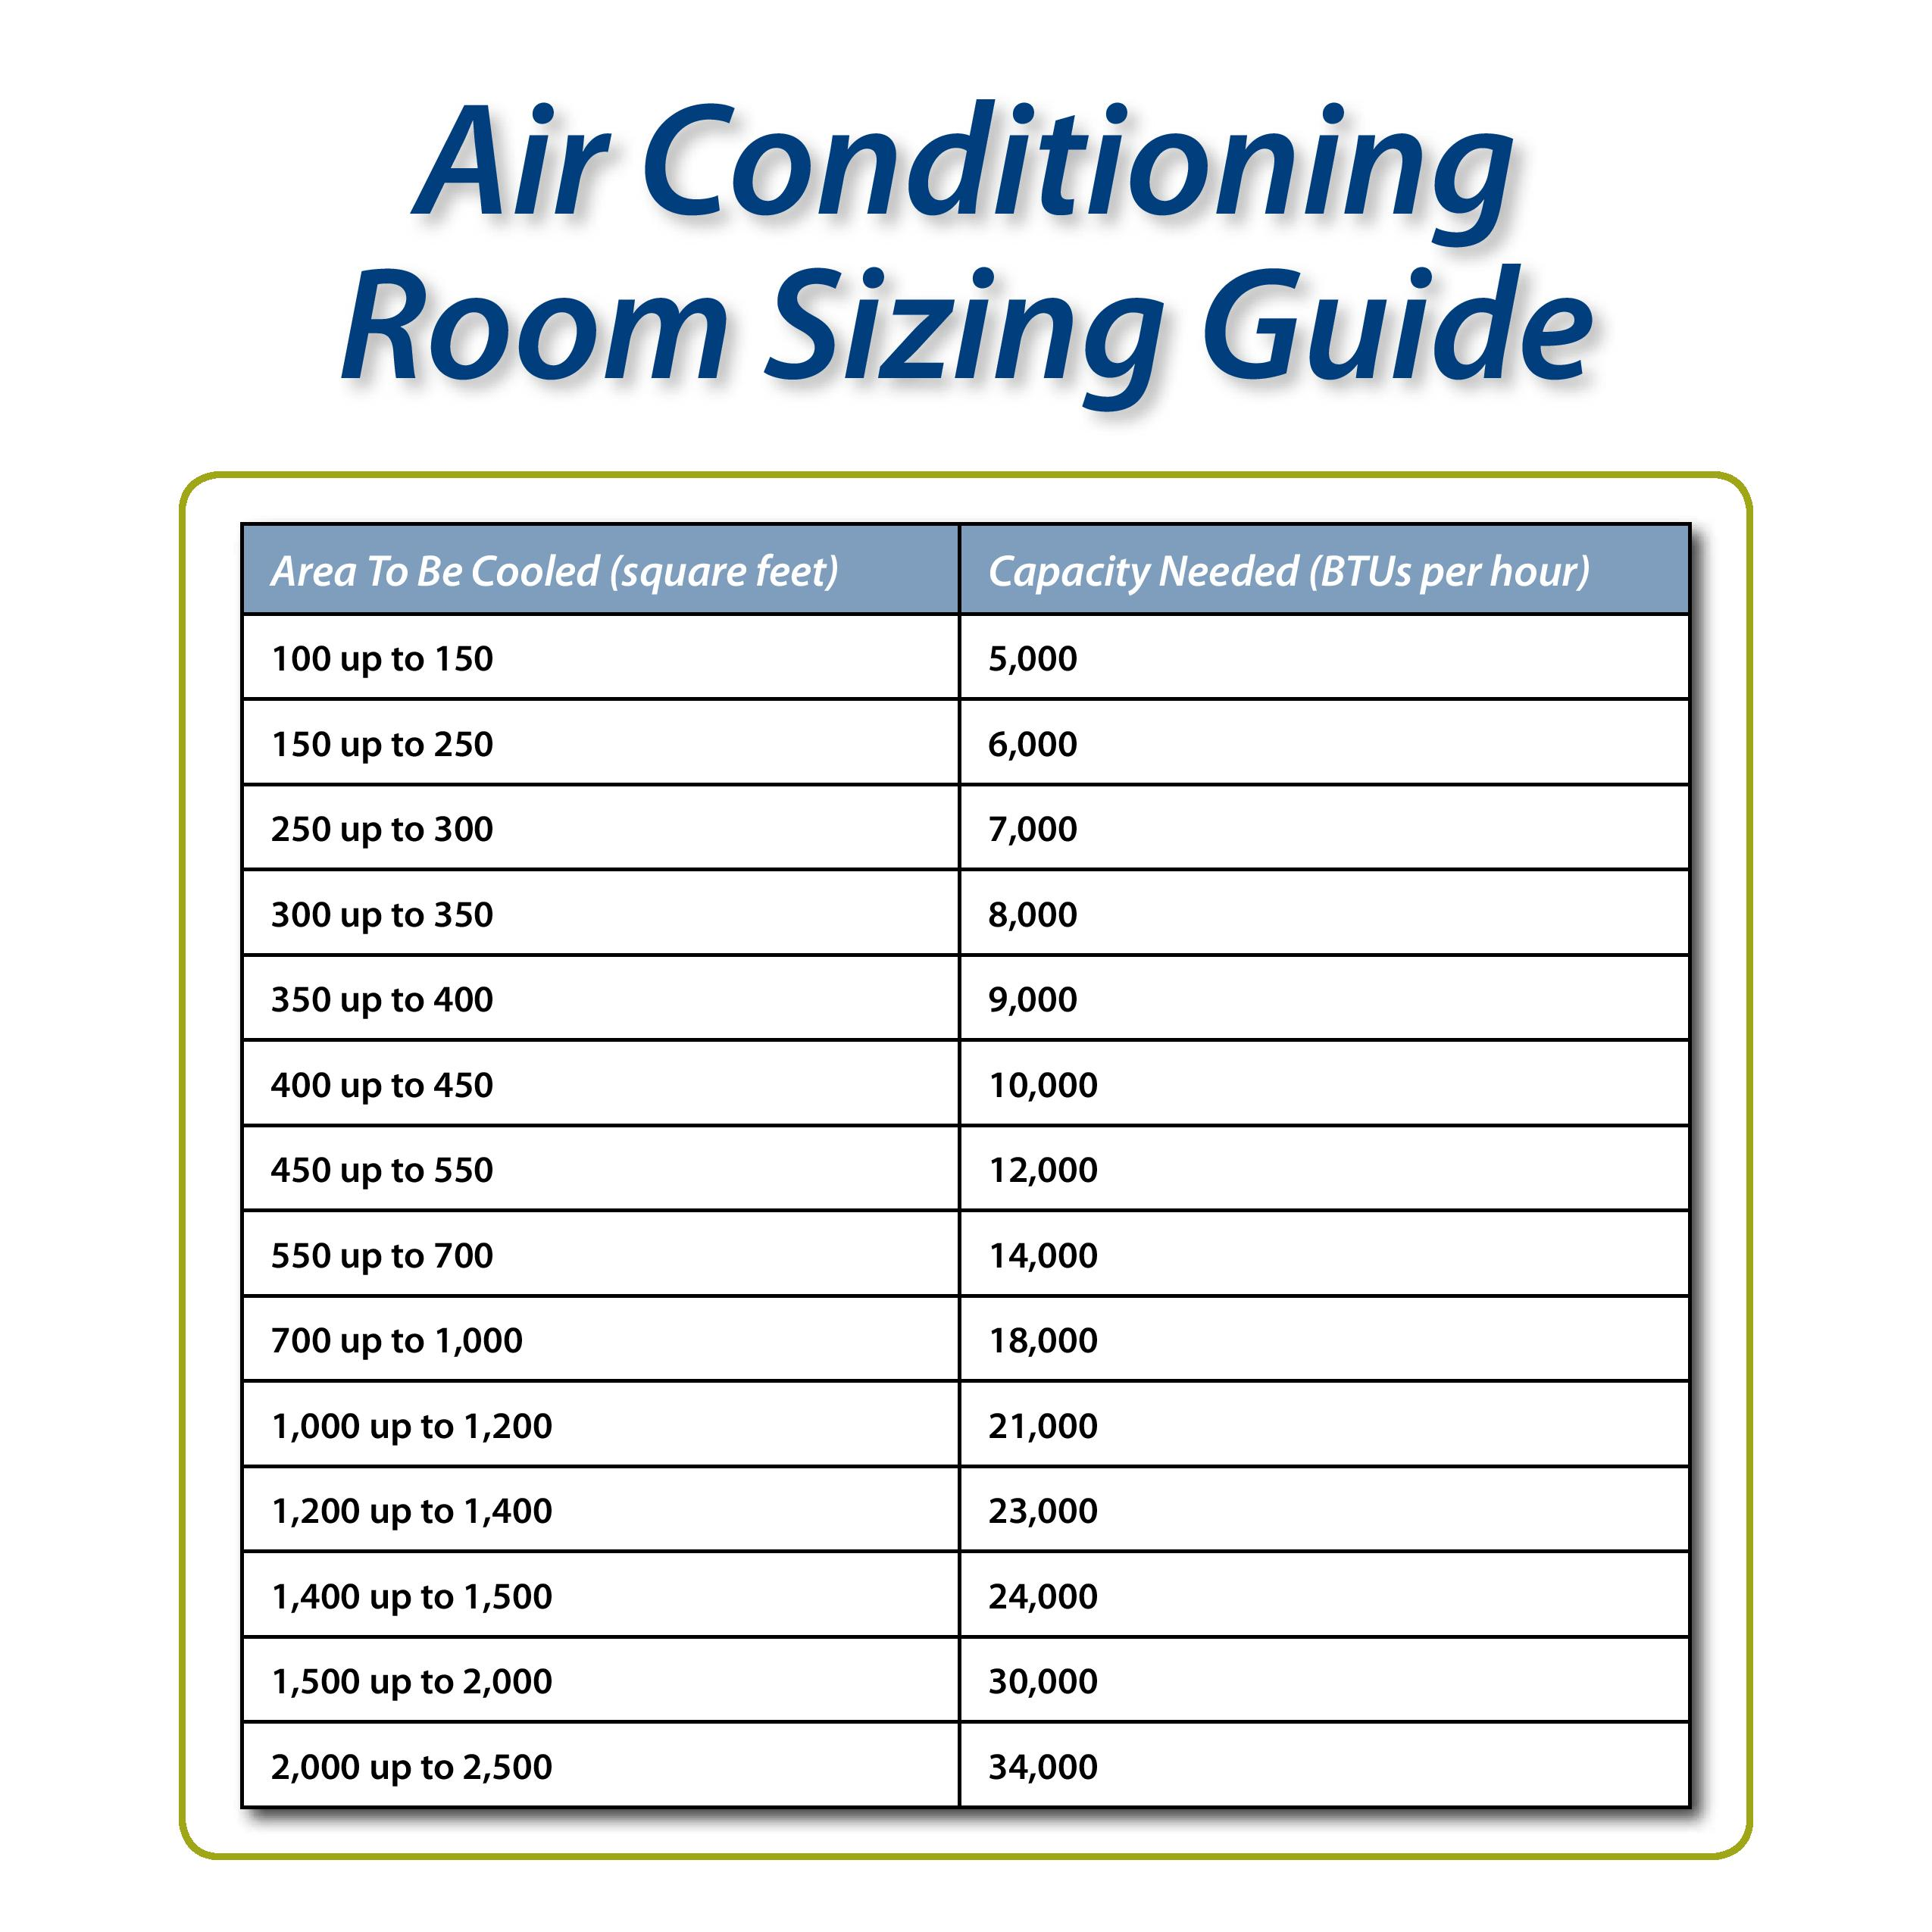 Air conditioner to square footage calculator How to calculate room size in square feet